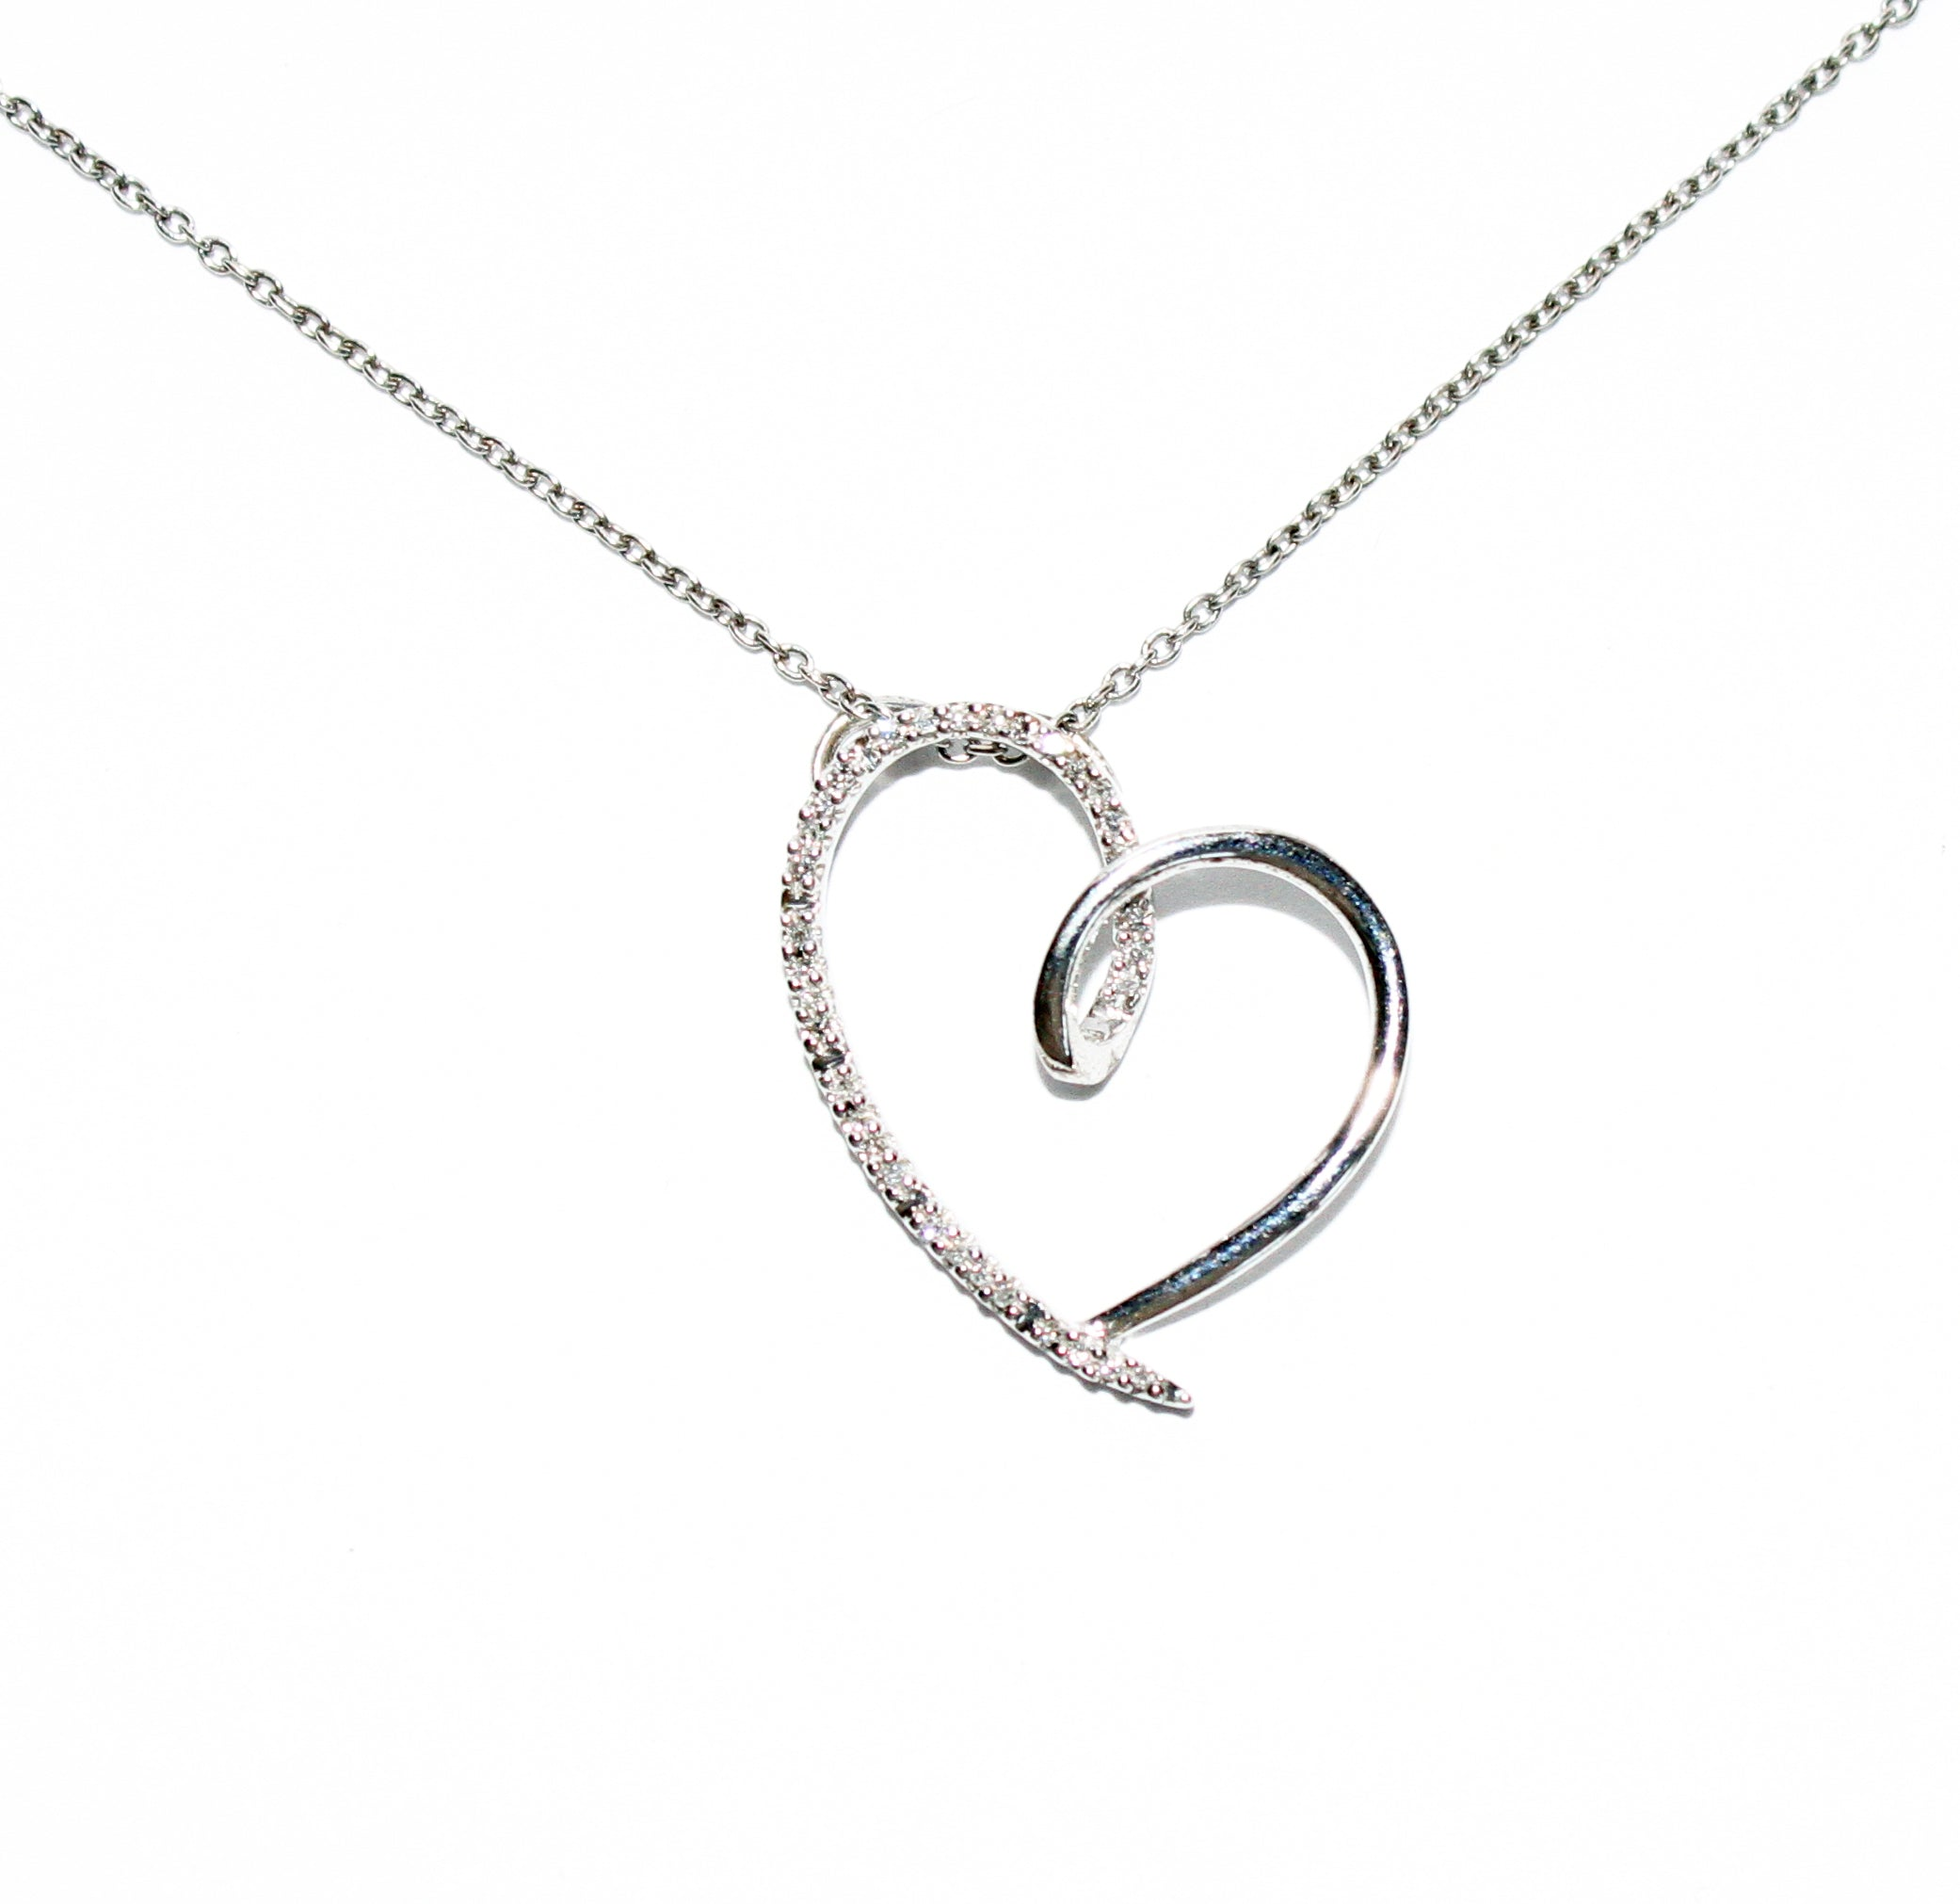 925 STERLING SILVER HEART PENDANT CHAIN